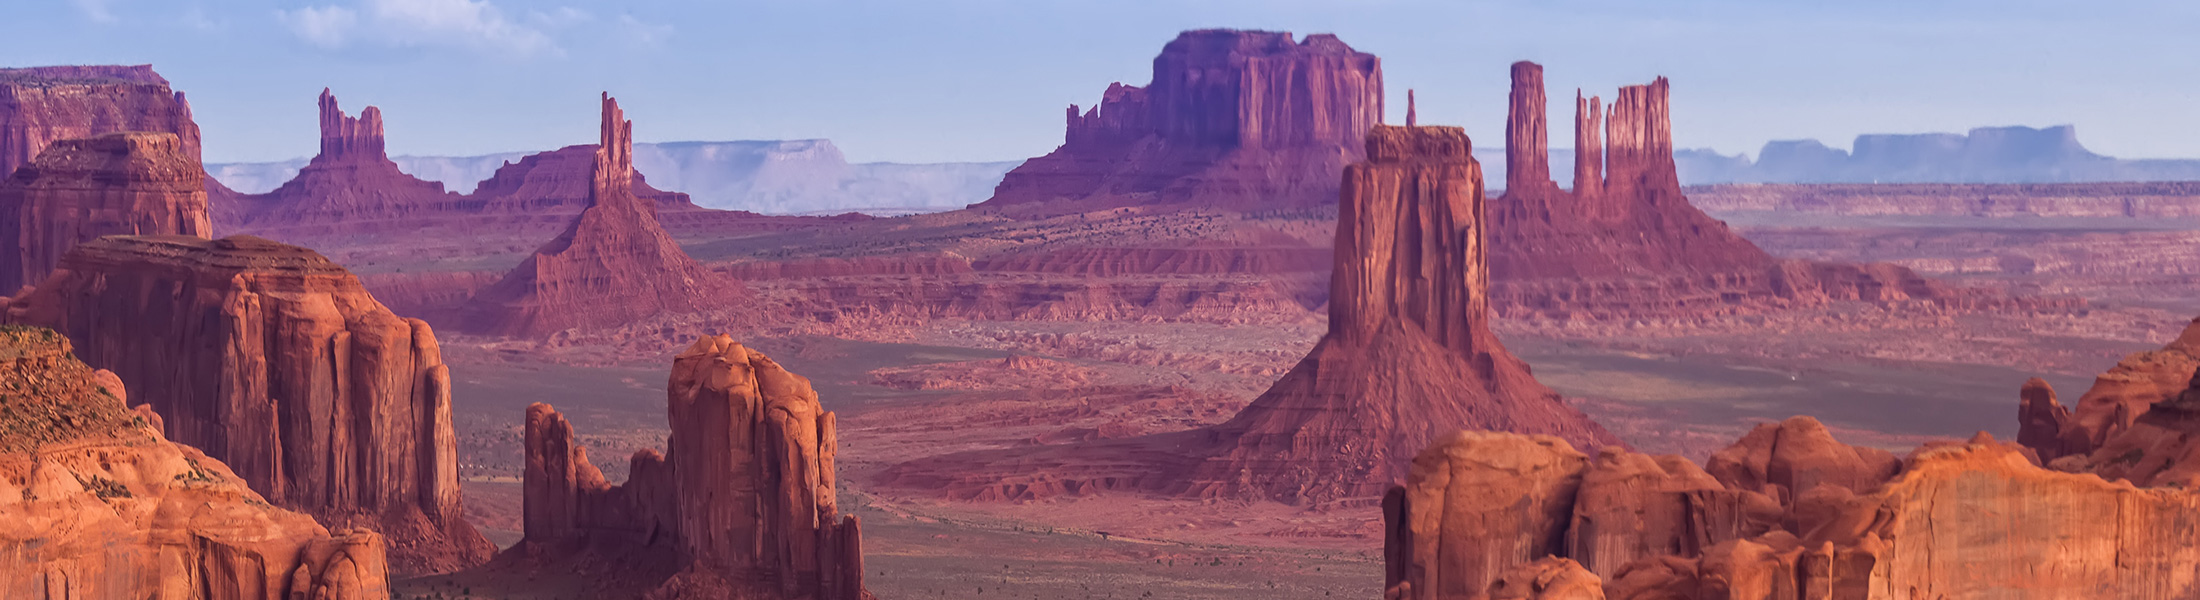 Monument Valley in North America